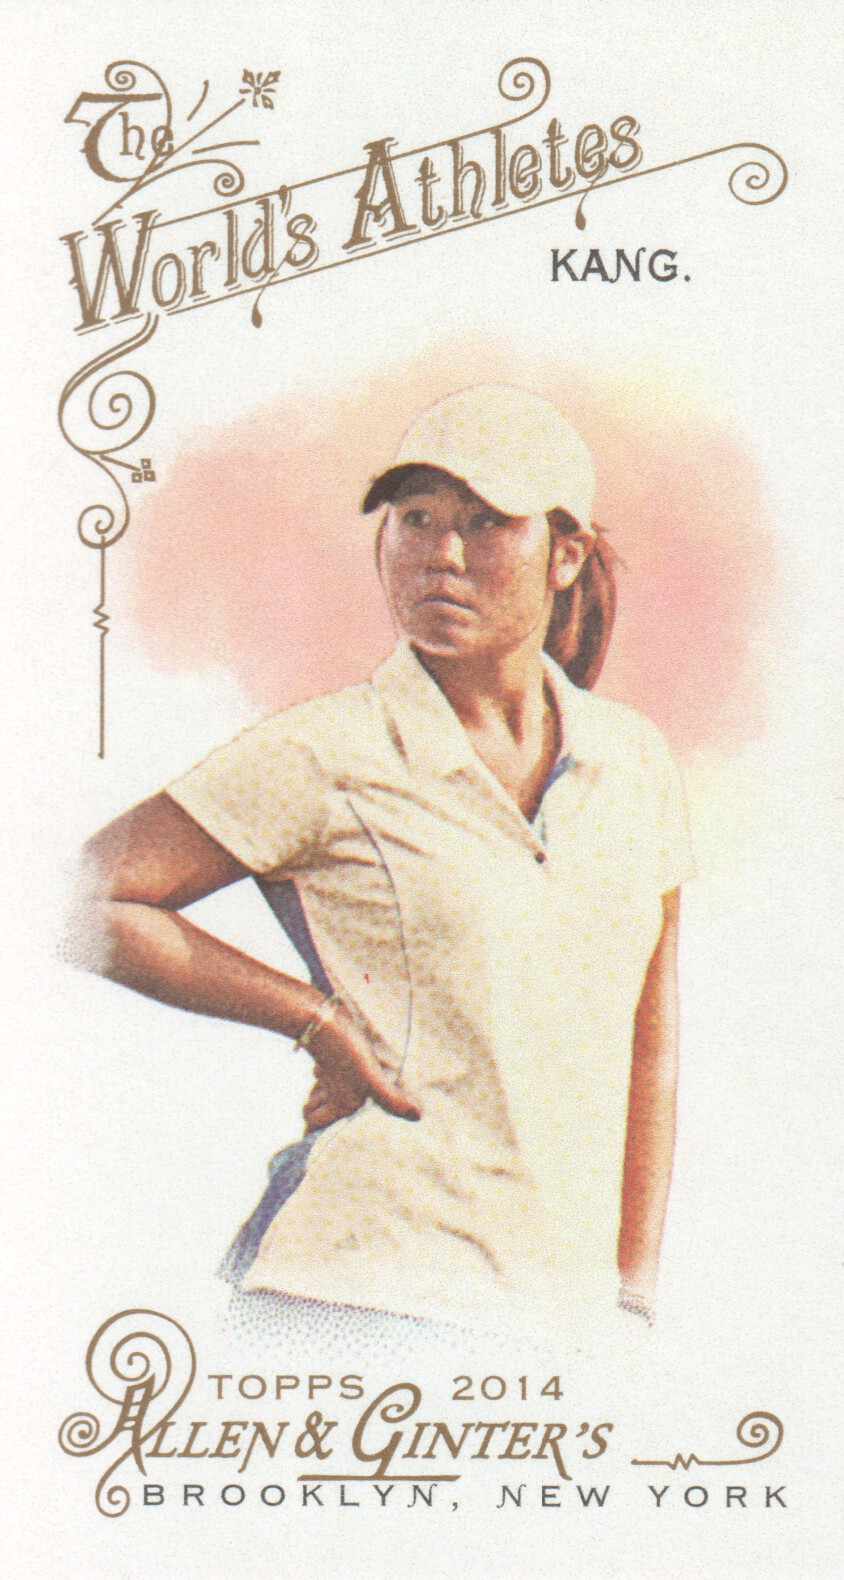 2014 Topps Allen and Ginter Mini #273 Danielle Kang